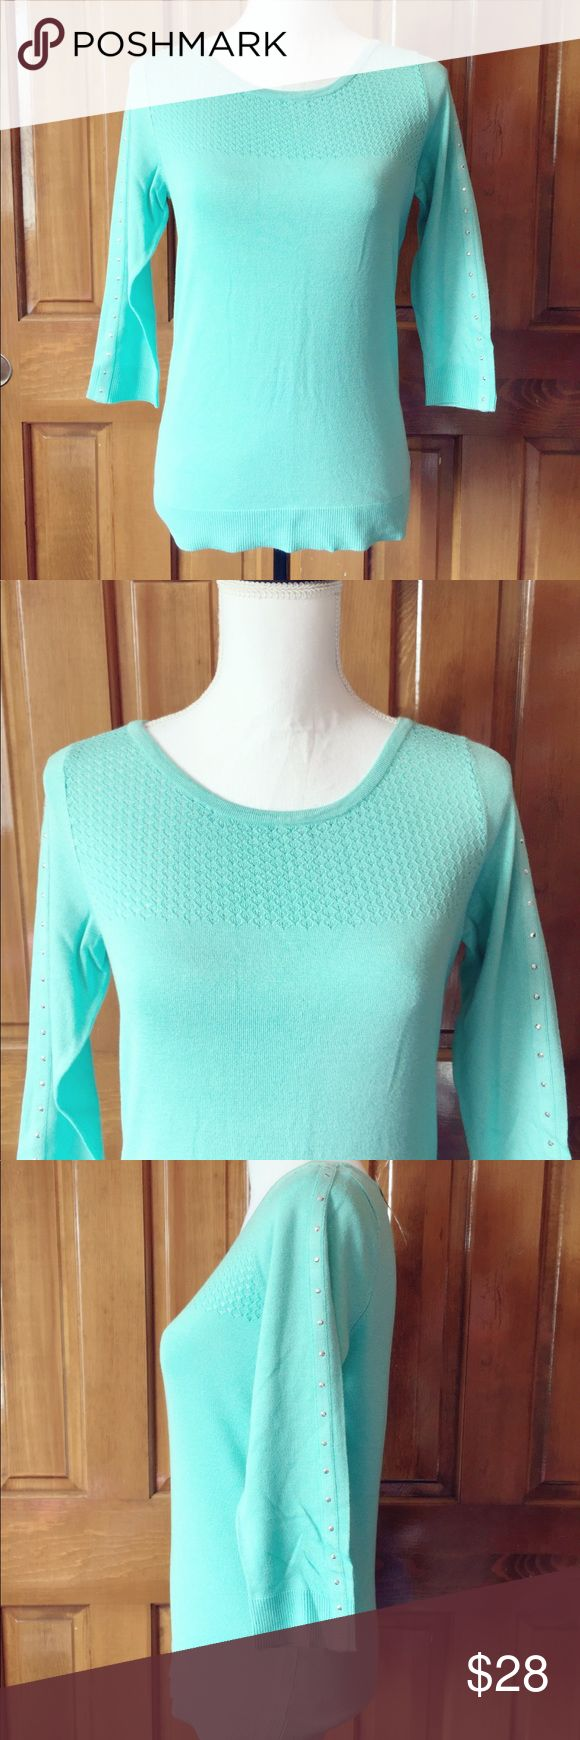 "NEW YORK & COMPANY 7th AVENUE STUDDED SWEATER NWT. NEW YORK & COMPANY 7th AVENUE STUDDED SWEATER SMALL   MEASURES APPROXIMATELY 23"" IN LENGTH. BUST APPROXIMATELY 17"". 3/4 LENGTH SLEEVES. TEAL IN COLOR. New York & Company Sweaters Crew & Scoop Necks"